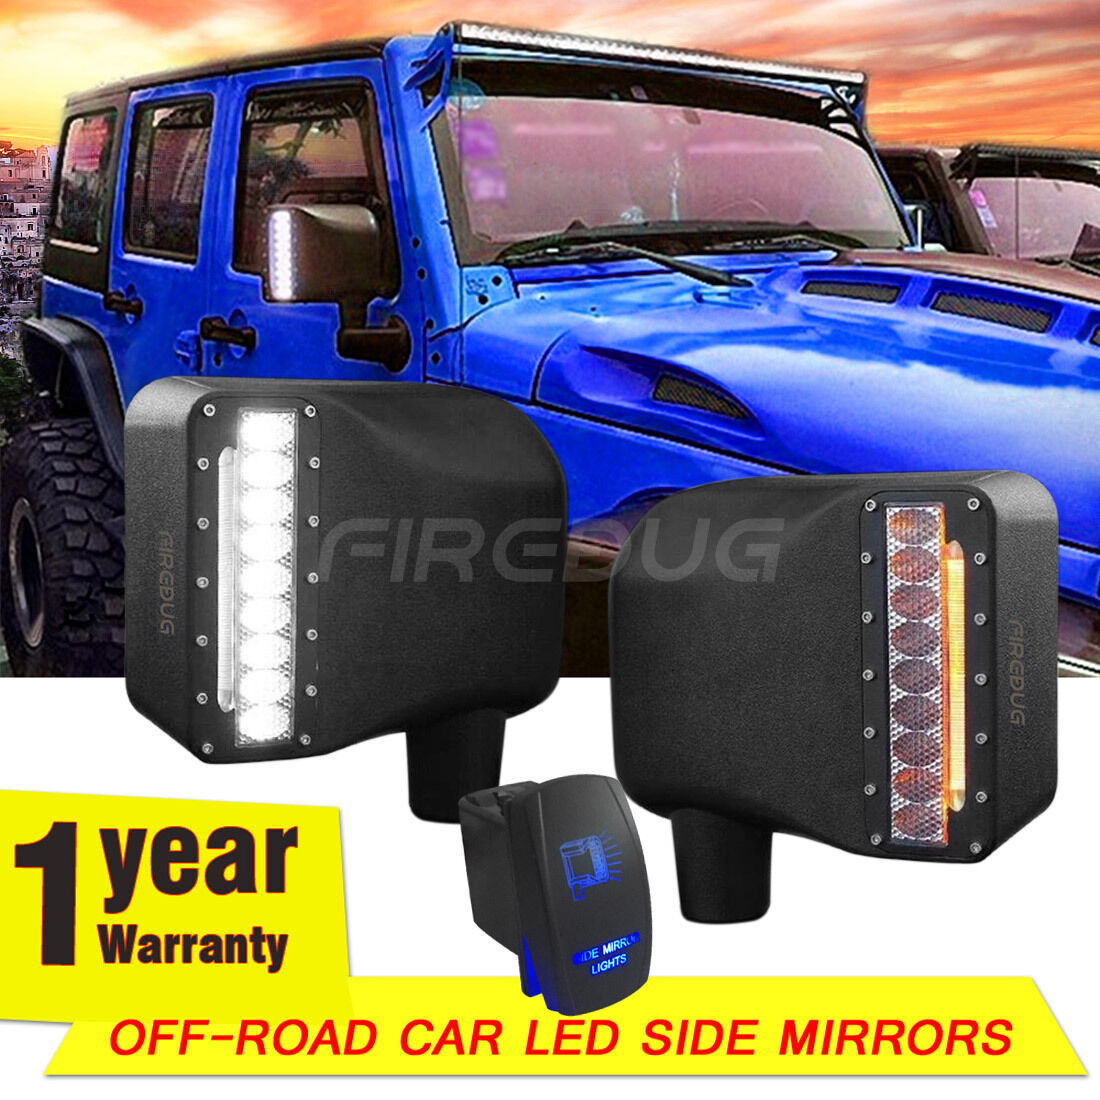 Firebug Jeep Wrangler Side Mirror Housing With Turn Signal Lights Light Switches Bonus Switch